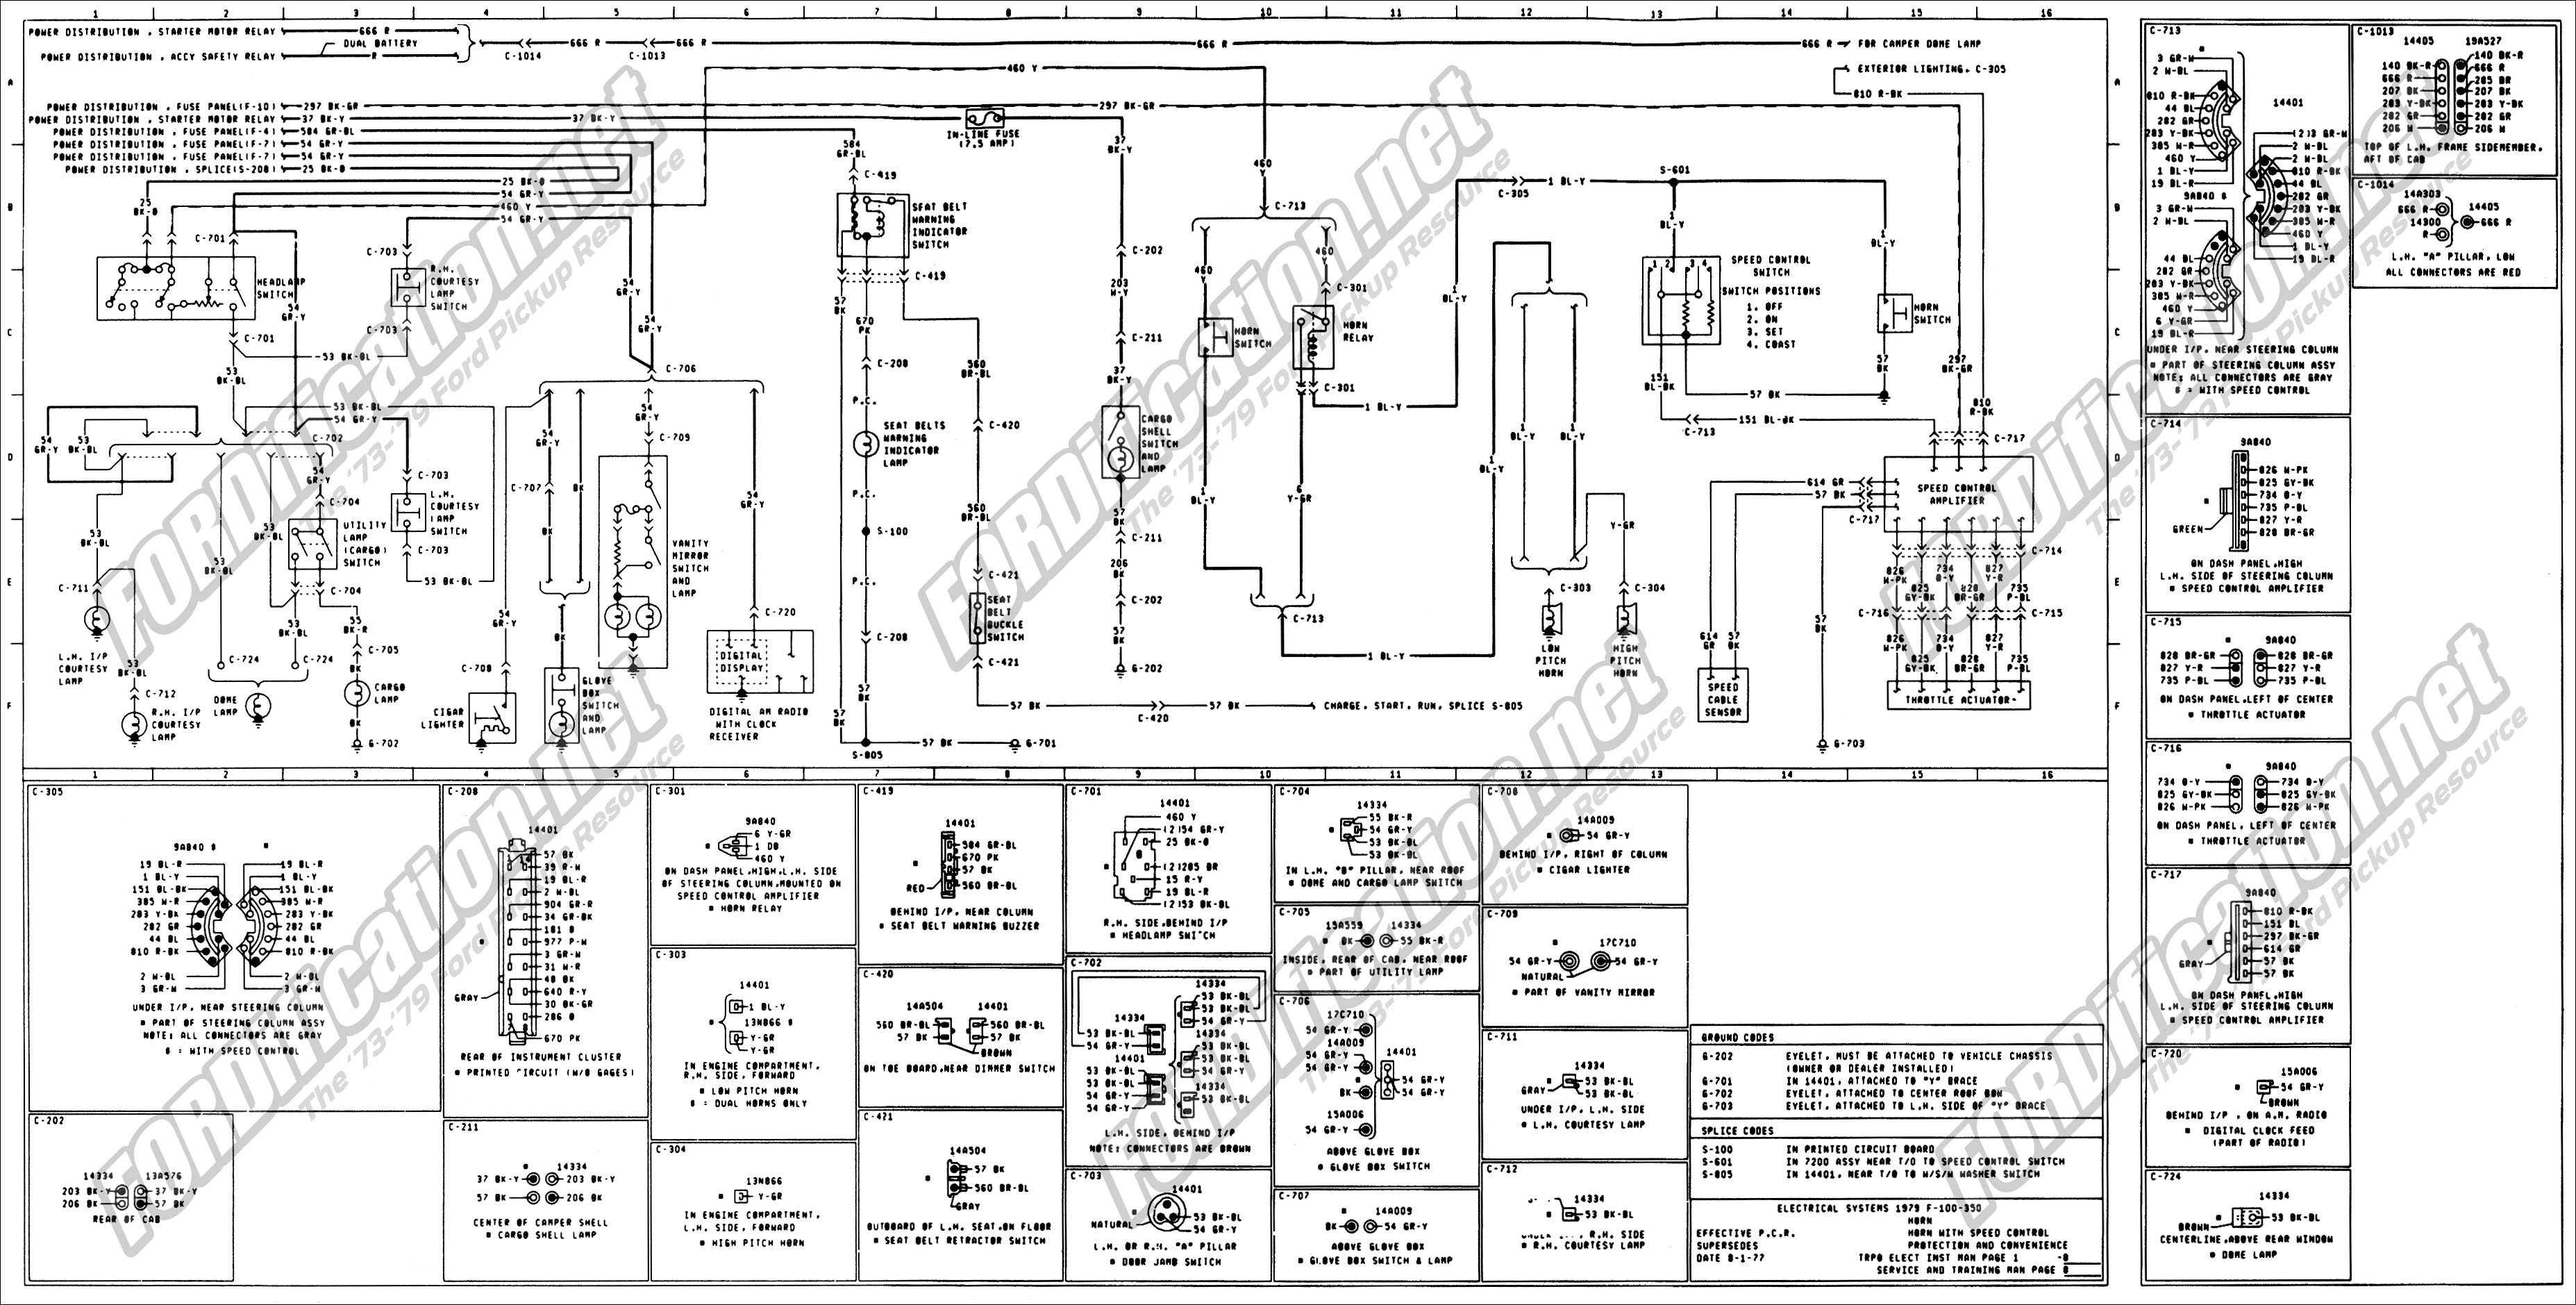 wiring_79master_8of9 ford excursion gas tank diagram 100 images sparkys answers 2000 07 1988 Ford F-350 Wiring Diagram at n-0.co